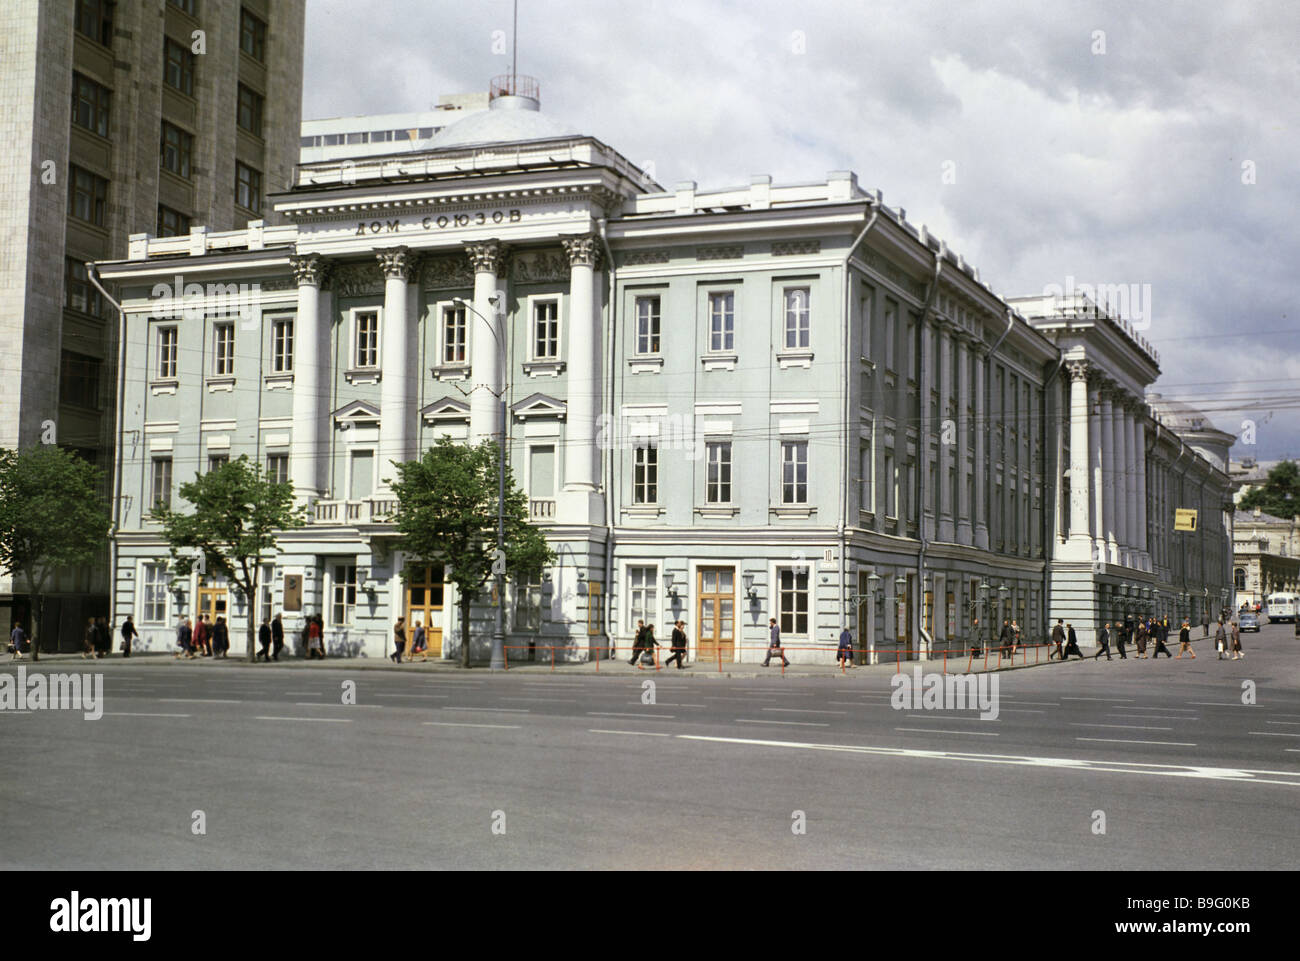 Building of the House of Trade Unions - Stock Image